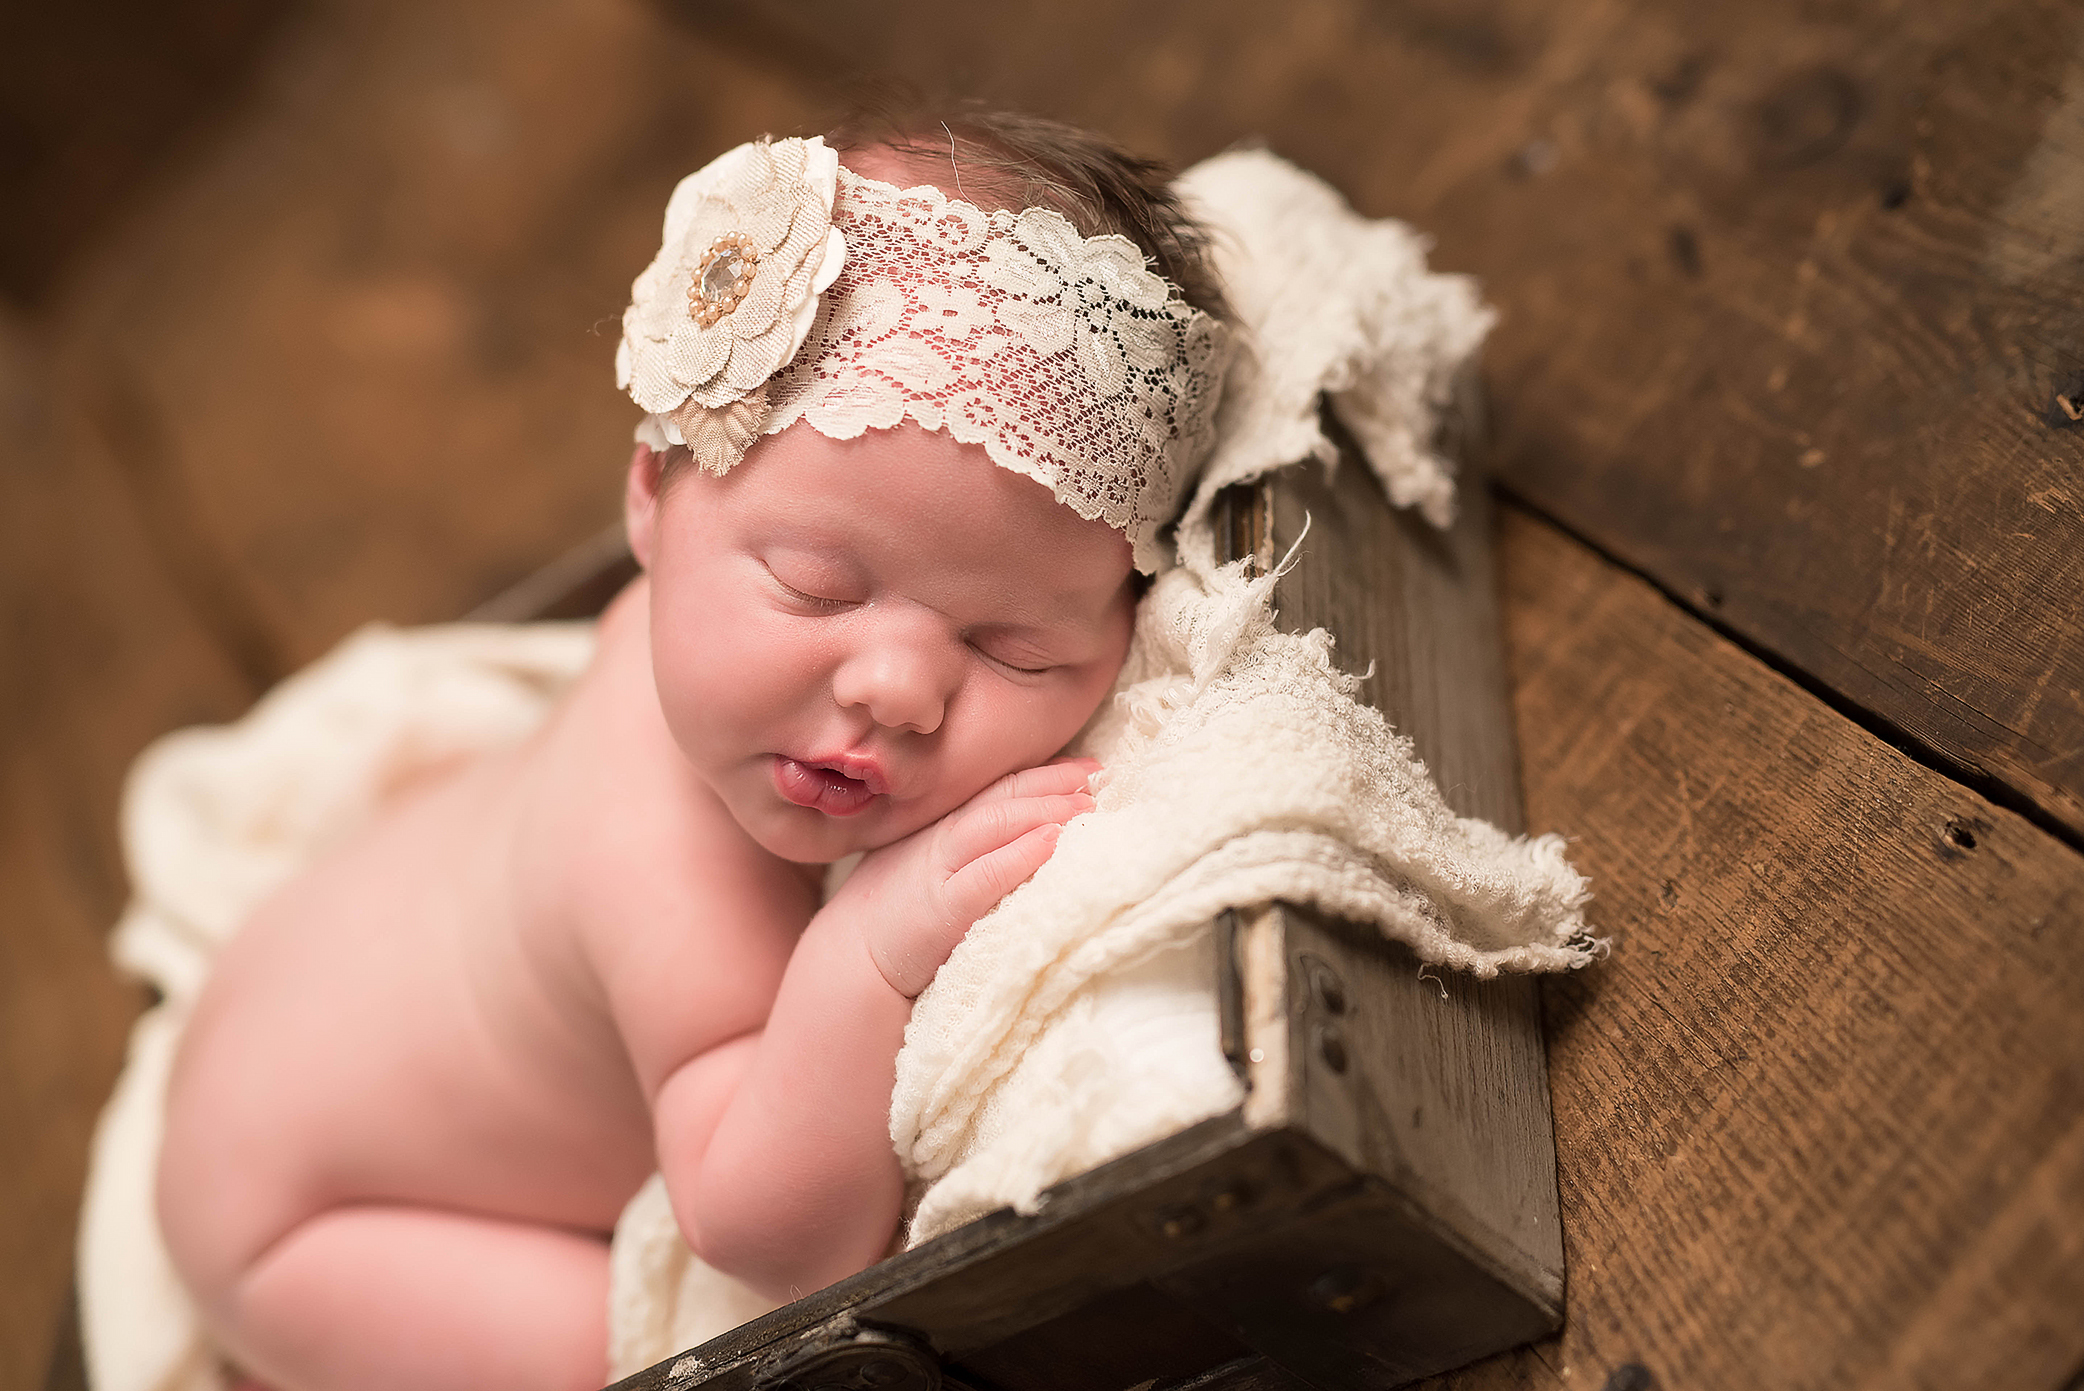 Infant and newborn photography Pittsburgh. Julie Bradley is Pittsburgh